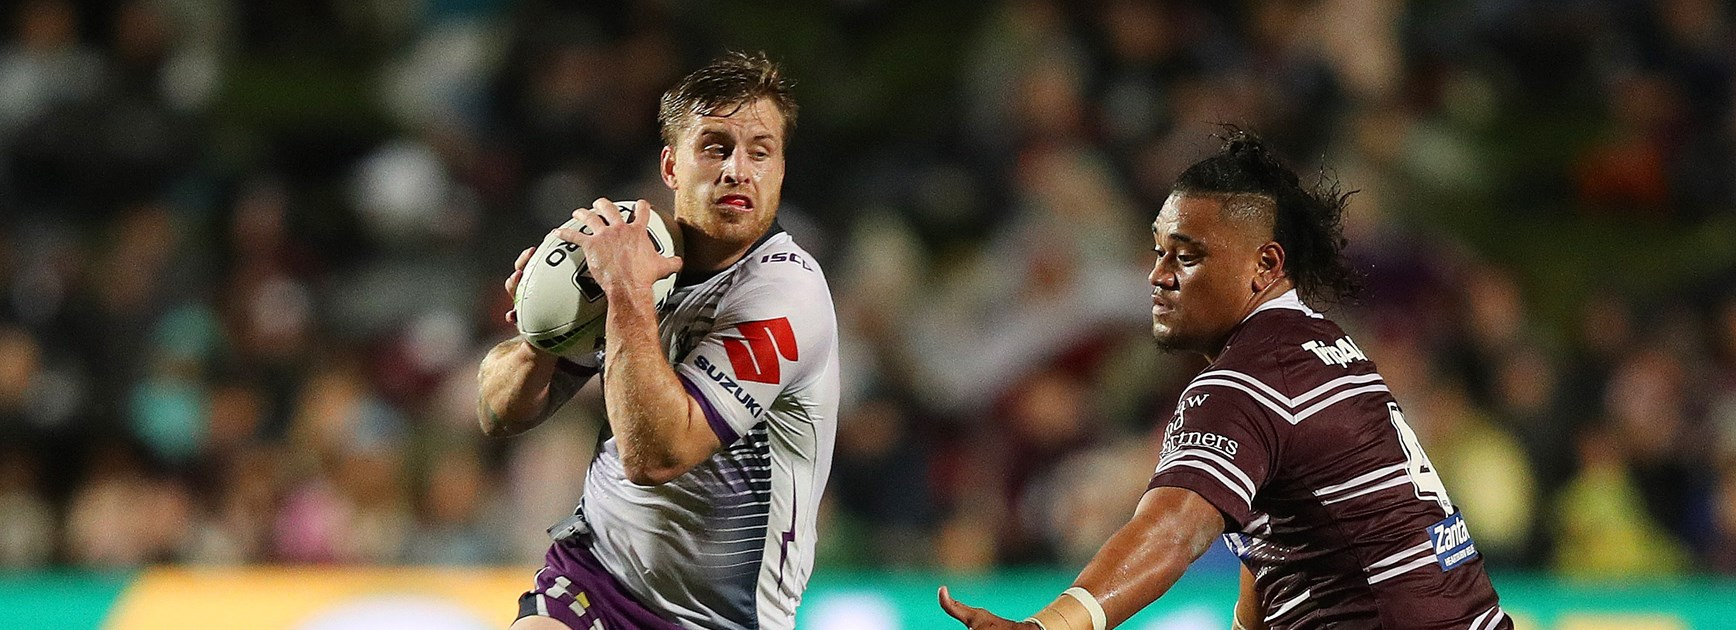 Melbourne five-eighth Cameron Munster.